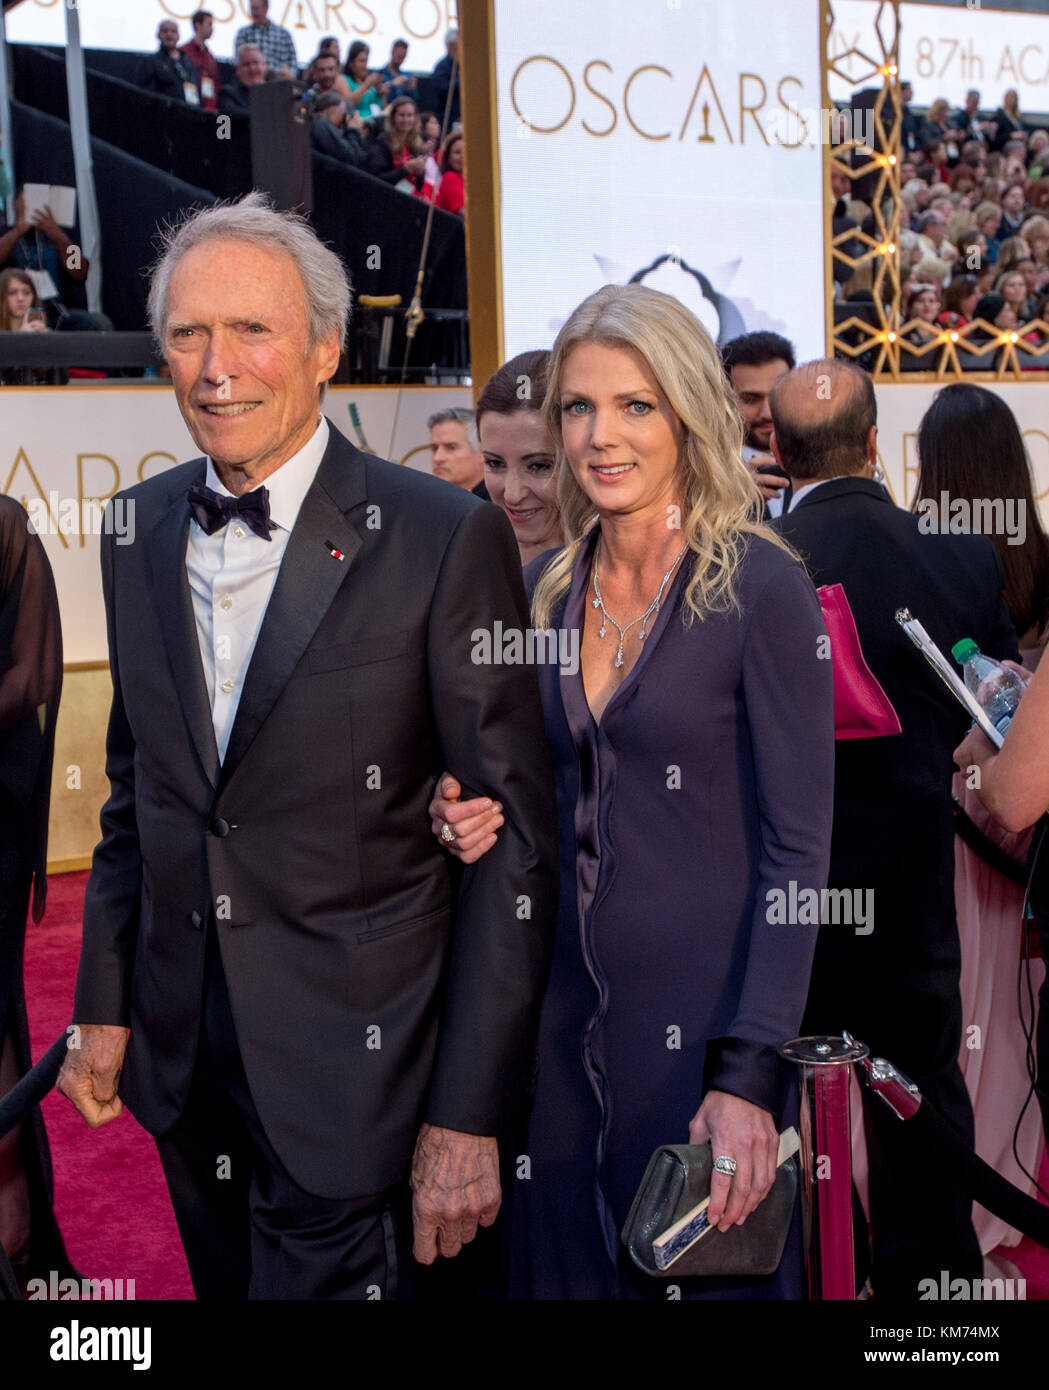 HOLLYWOOD, CA - febbraio 22: Clint Eastwood e Christina Sandera attendst la 87th annuale di Academy Awards di Hollywood & Highland Center il 22 febbraio 2015 in Hollywood, la California. Persone: Clint Eastwood e Christina Sandera Foto Stock